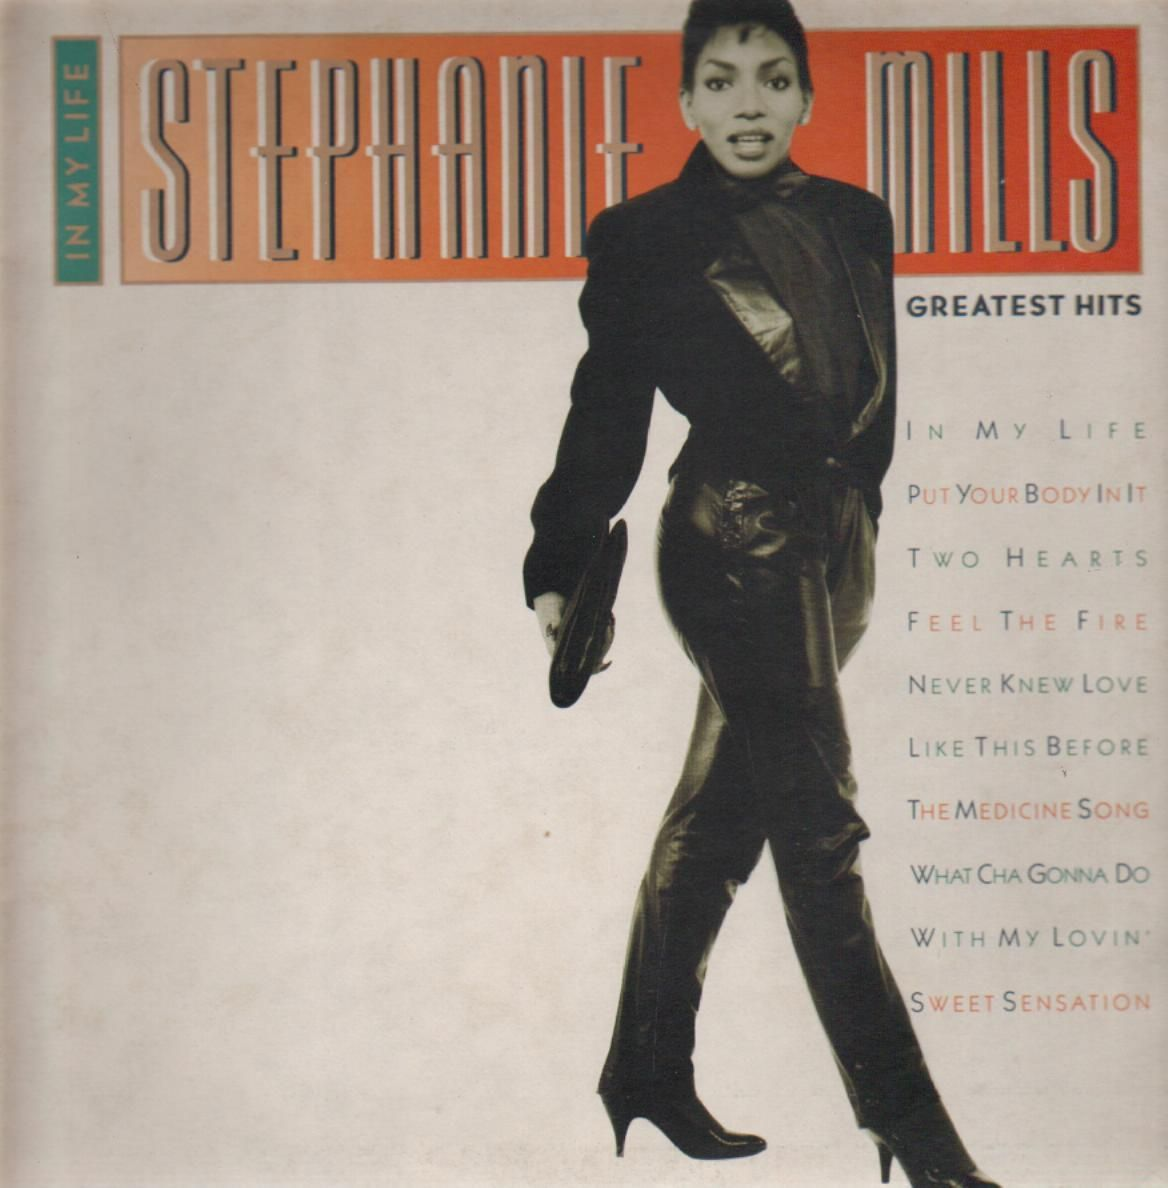 Google Image Result for http://www.recordsale.de/cdpix/s/stephanie_mills-in_my_life_-_greatest_hits.jpg